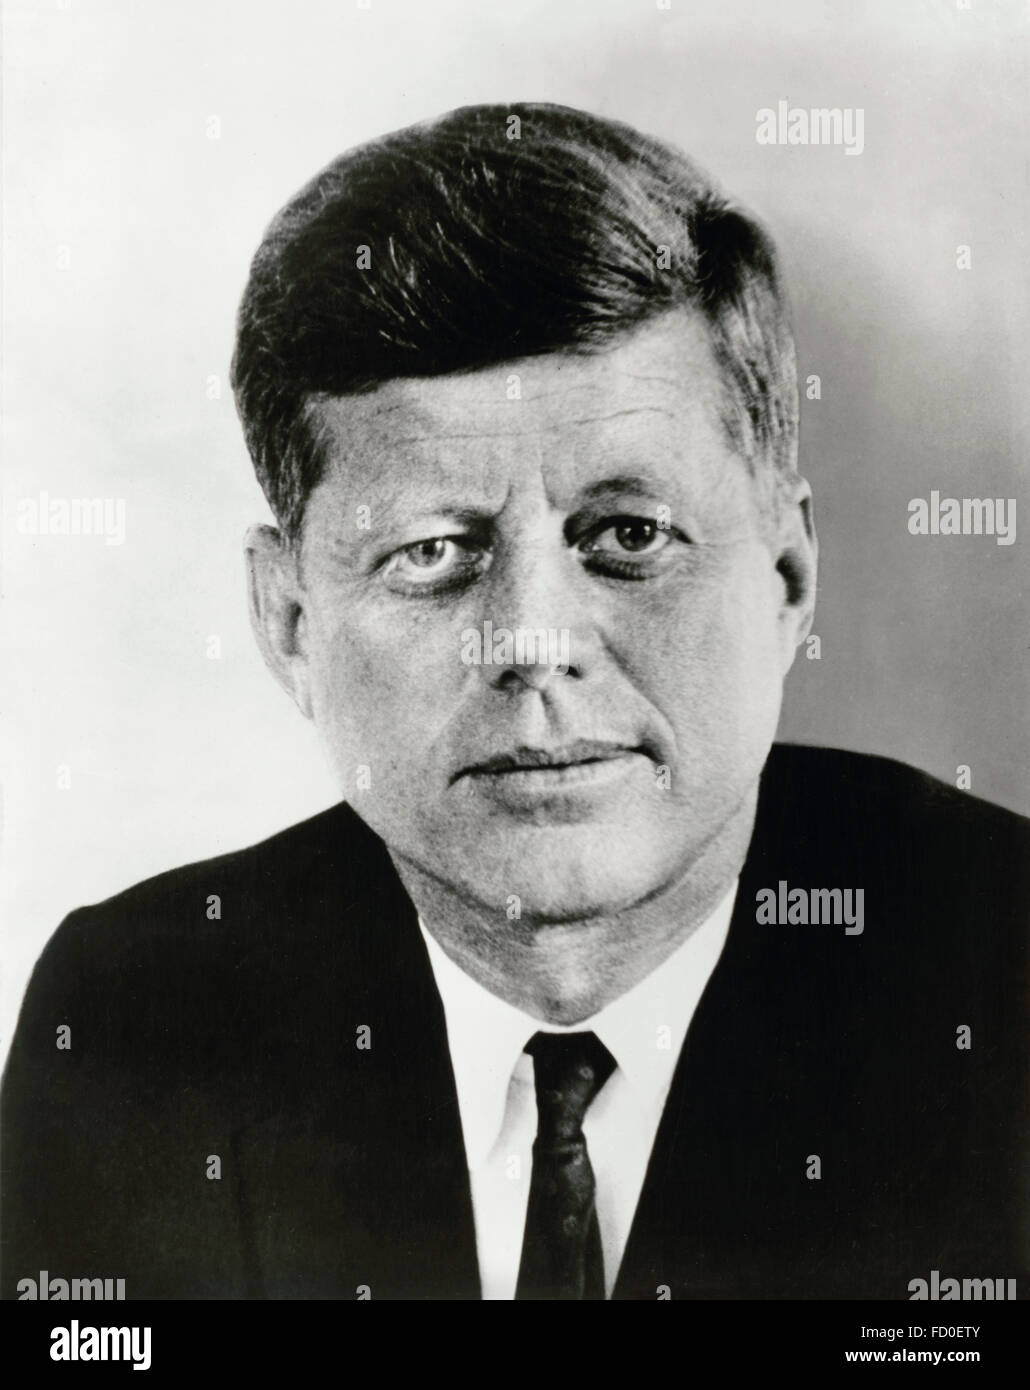 John F Kennedy, portrait of the 35th President of the USA, 1961 - Stock Image